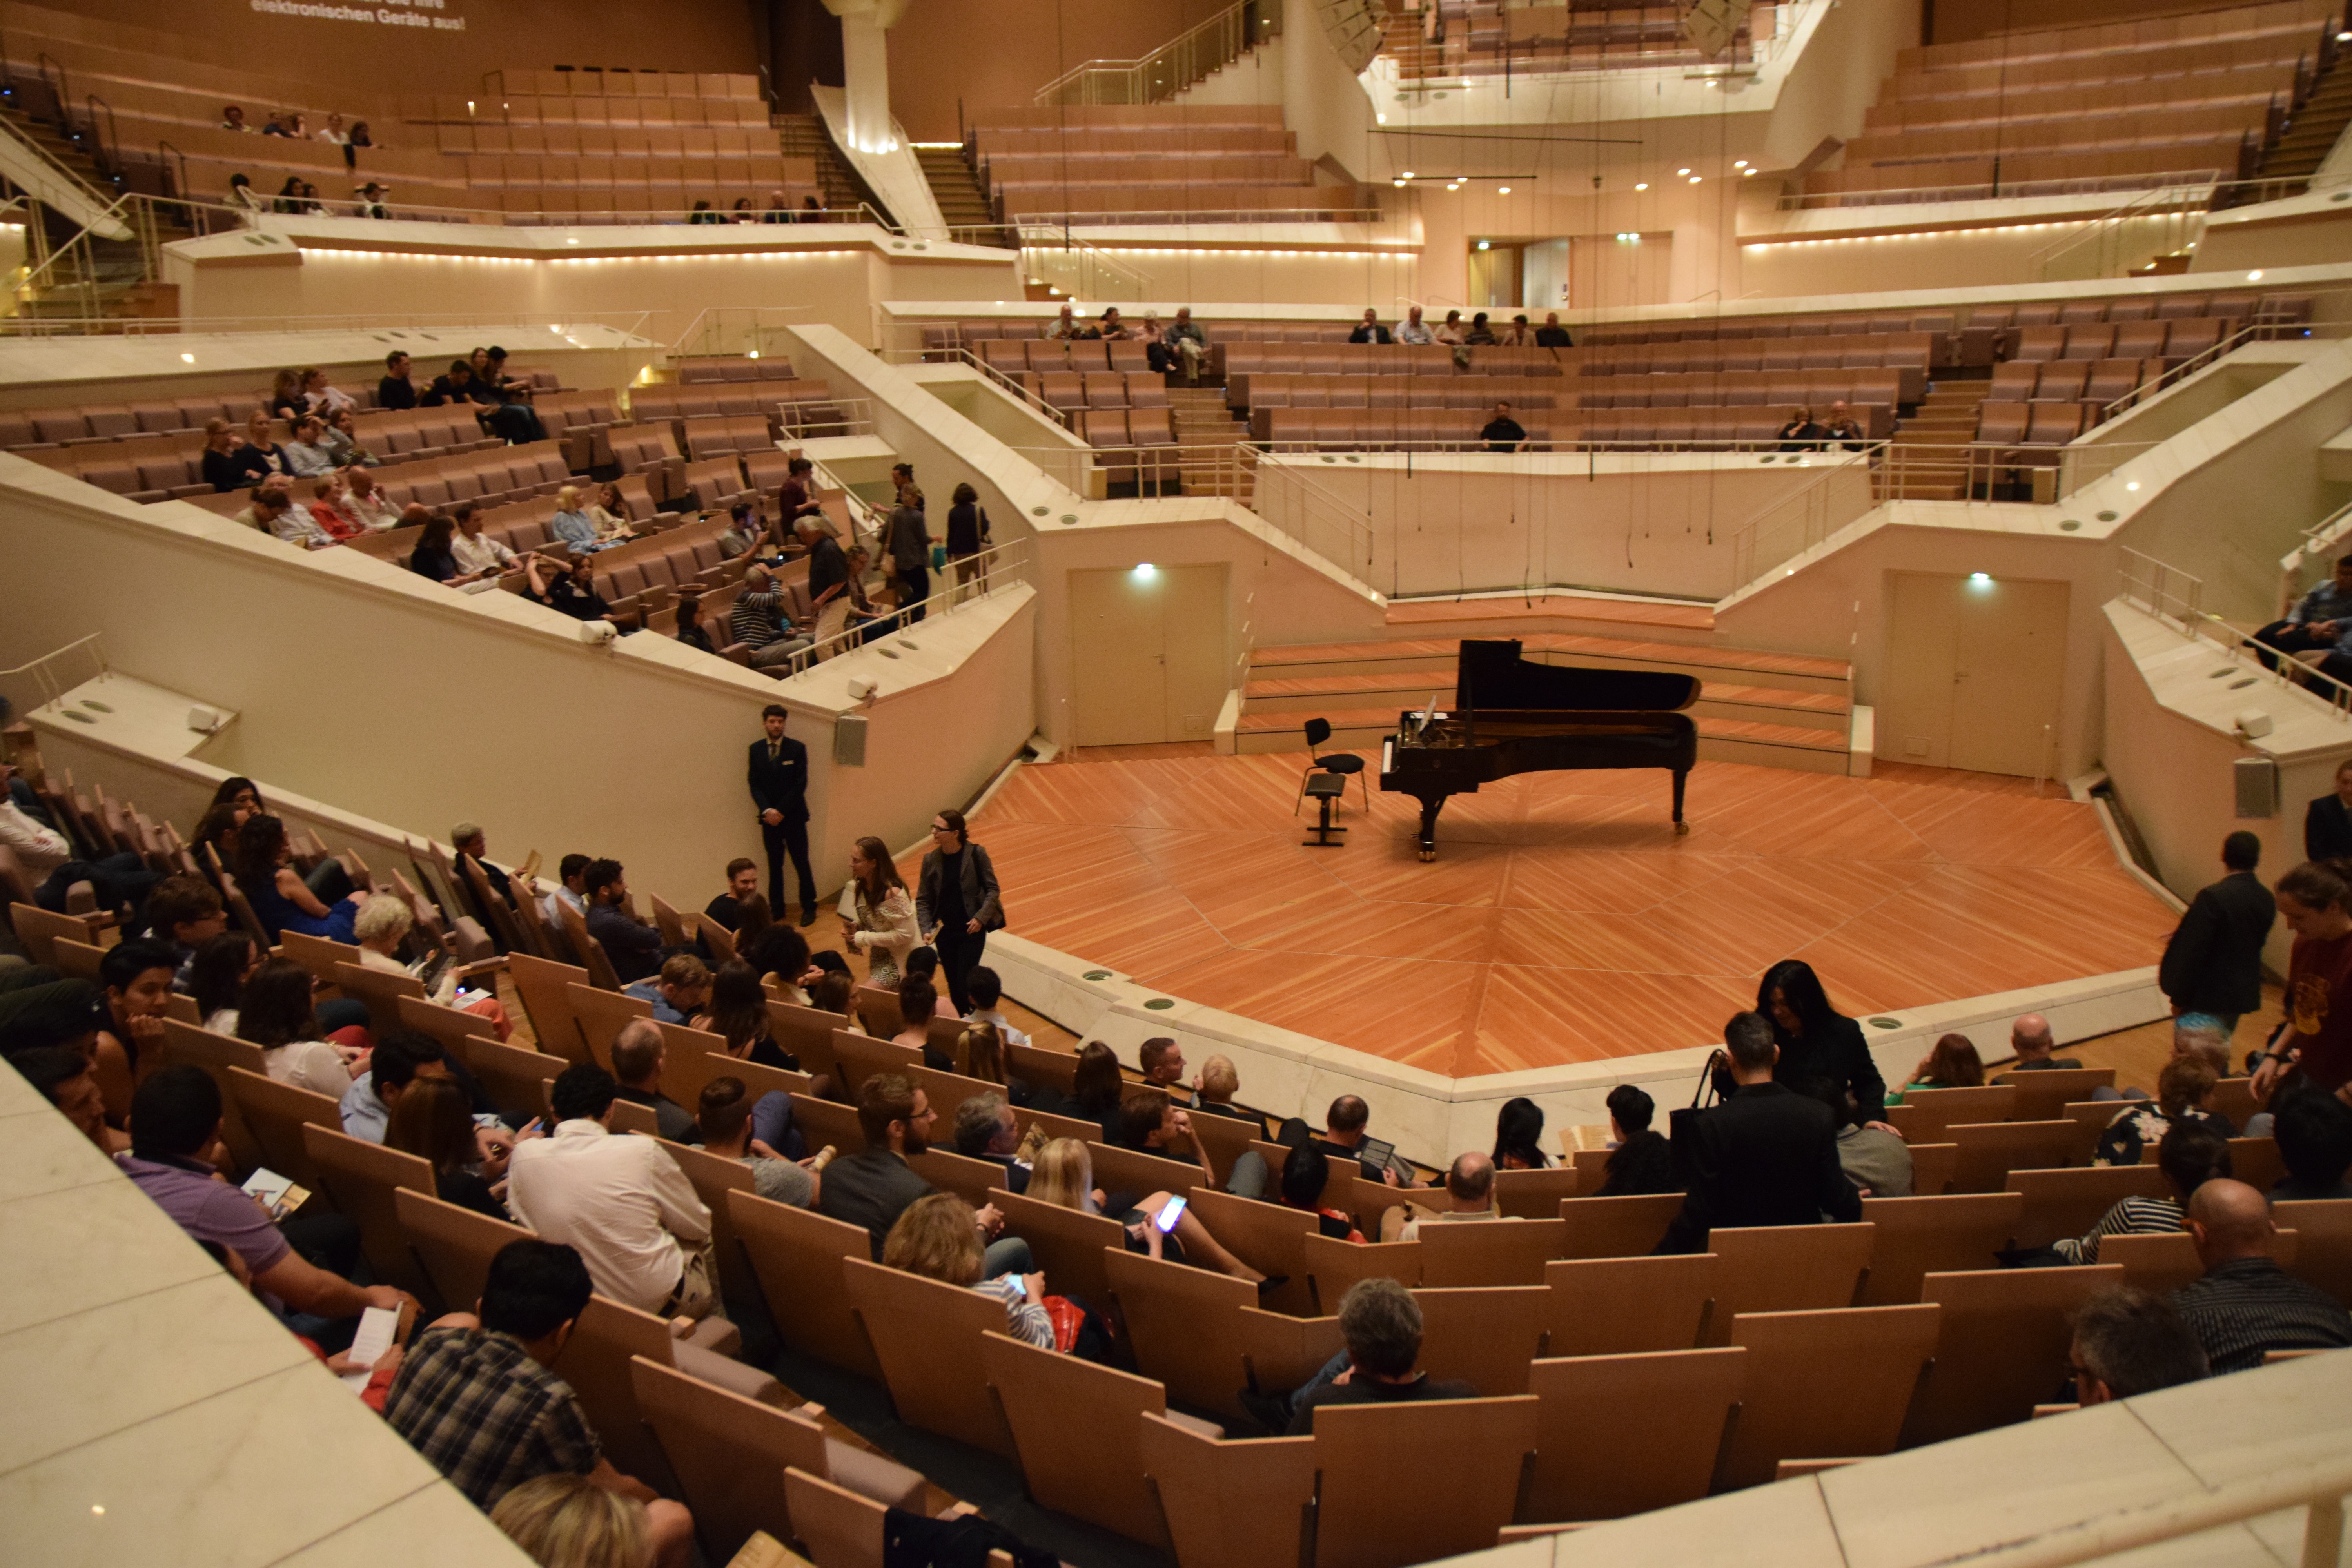 berliner music competition 30